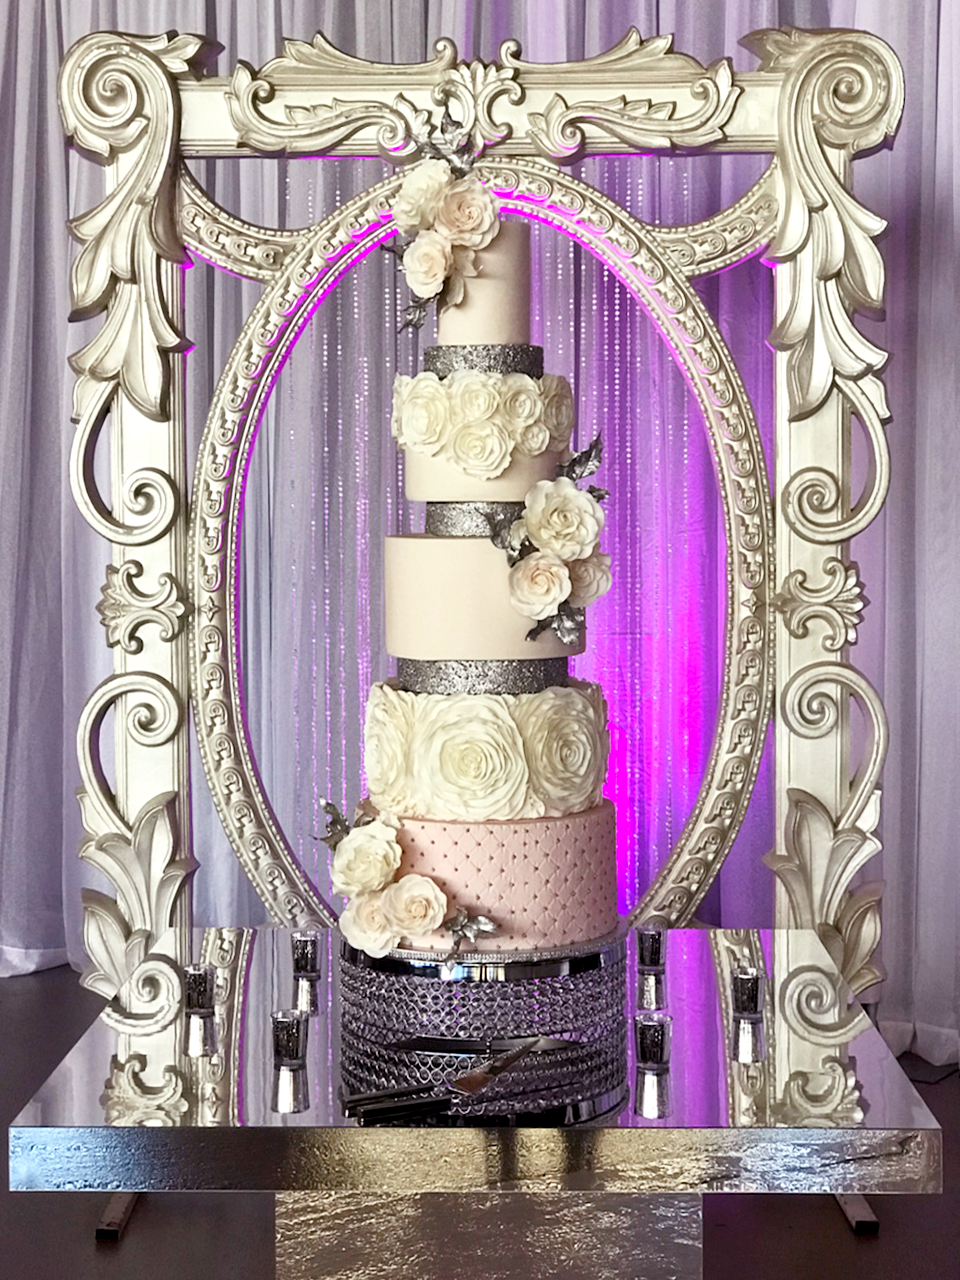 Whippt Desserts - Wedding Cake July 2018